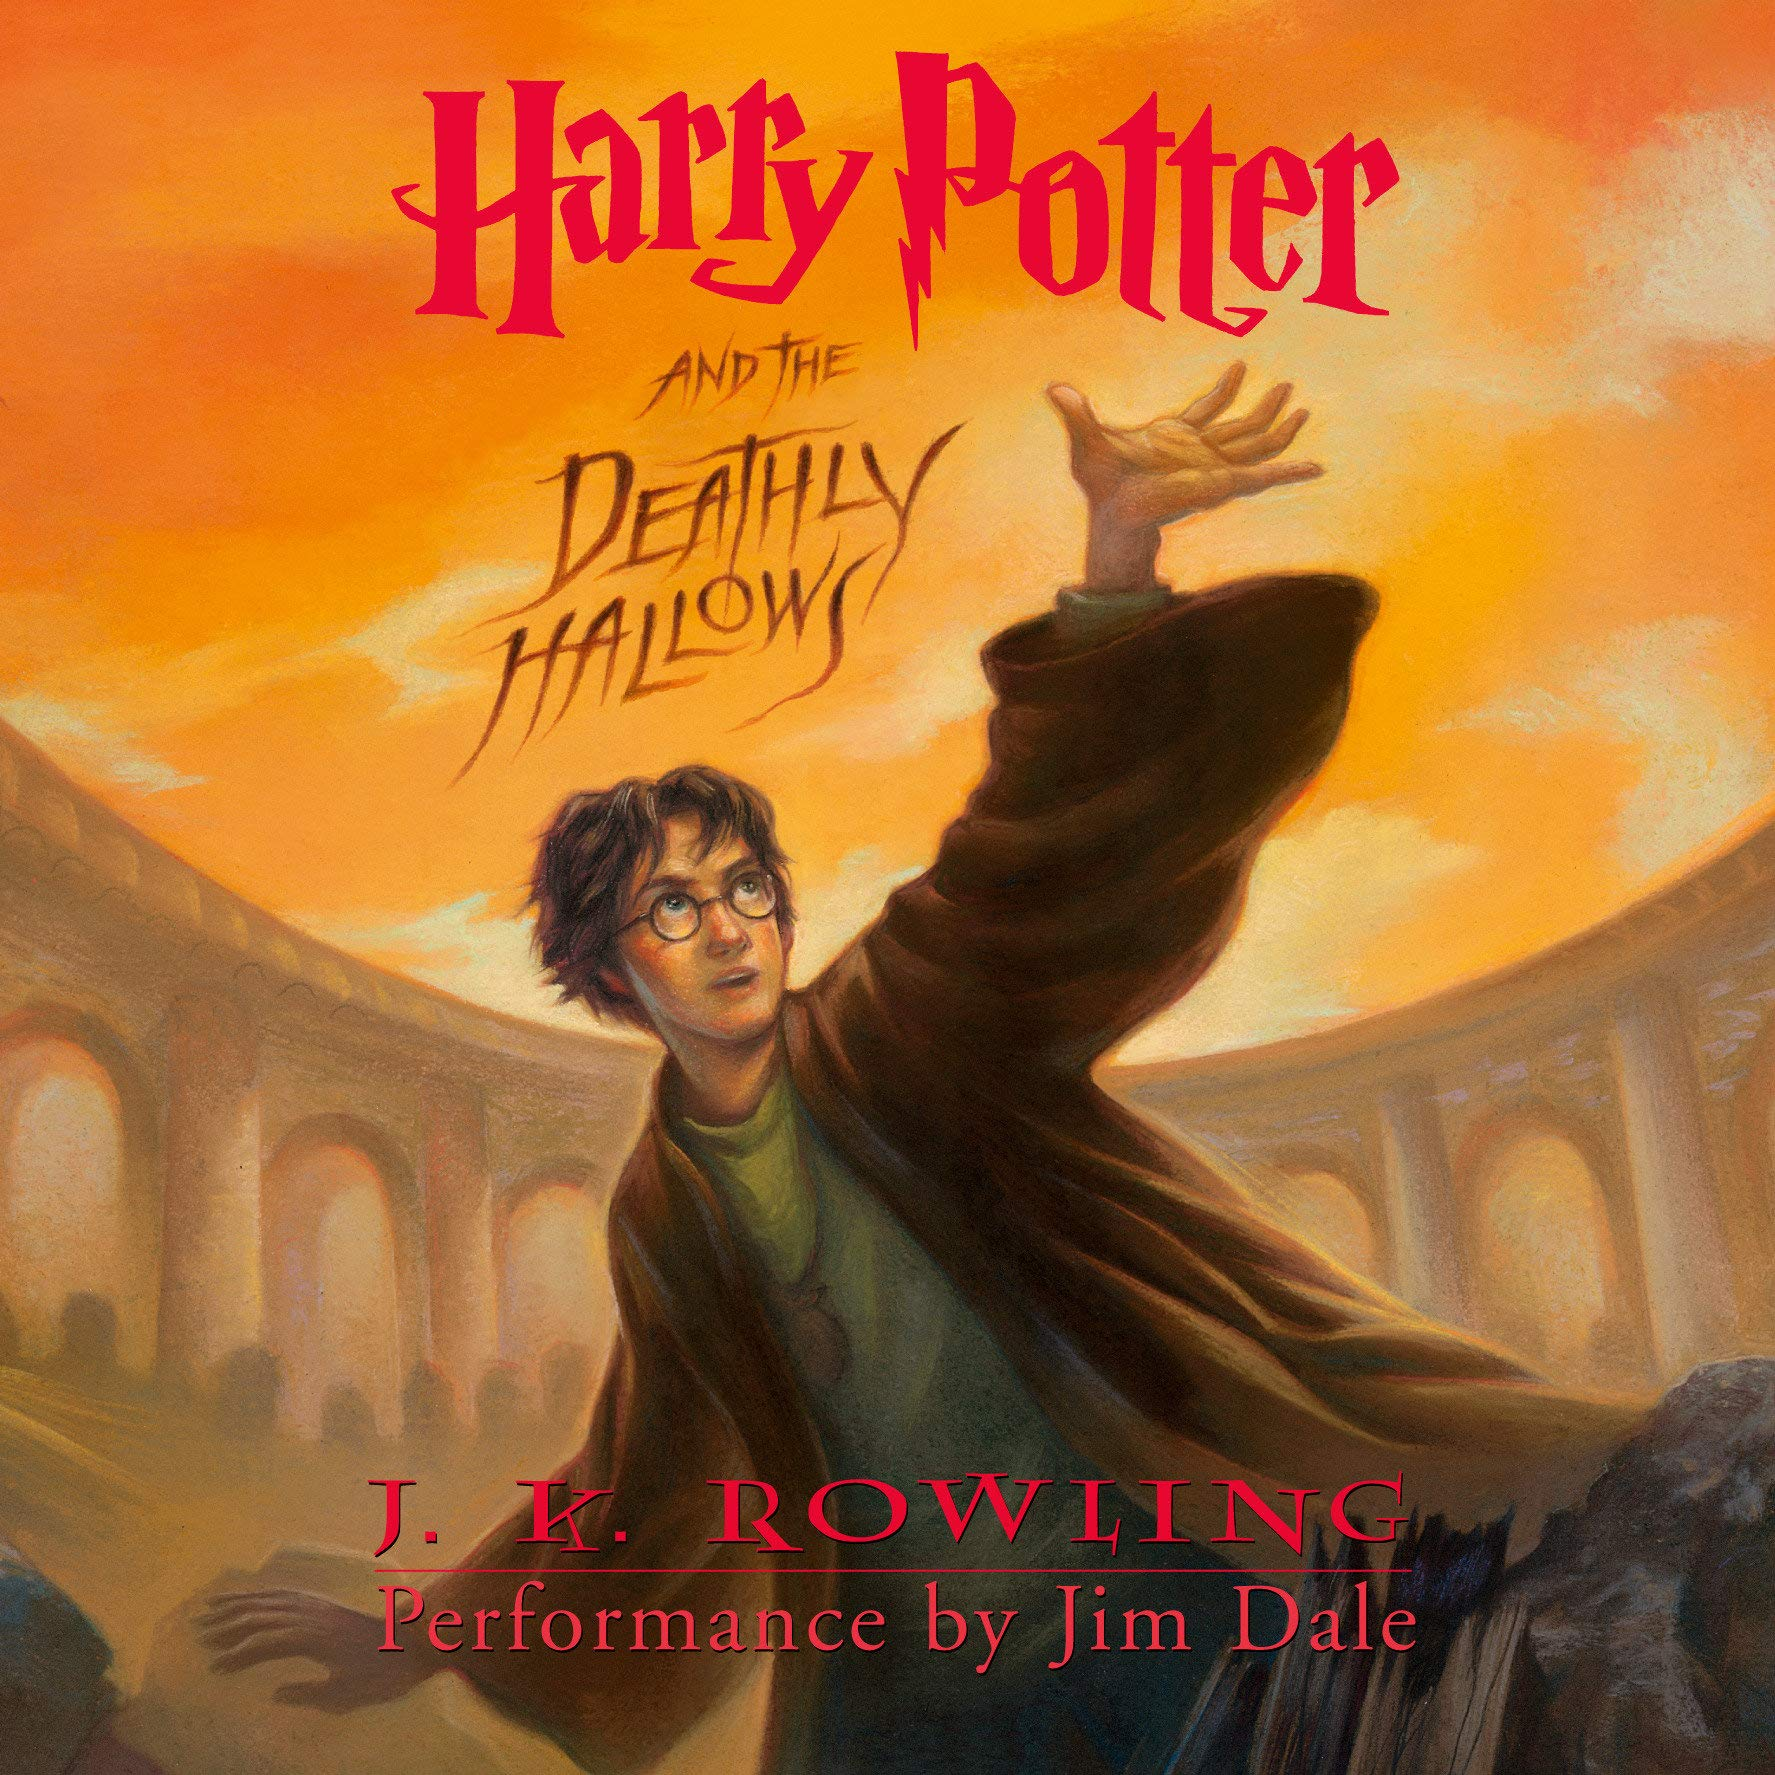 Harry Potter And The Deathly Hallows J K Rowling Jim Dale 8601415574456 Amazon Com Books